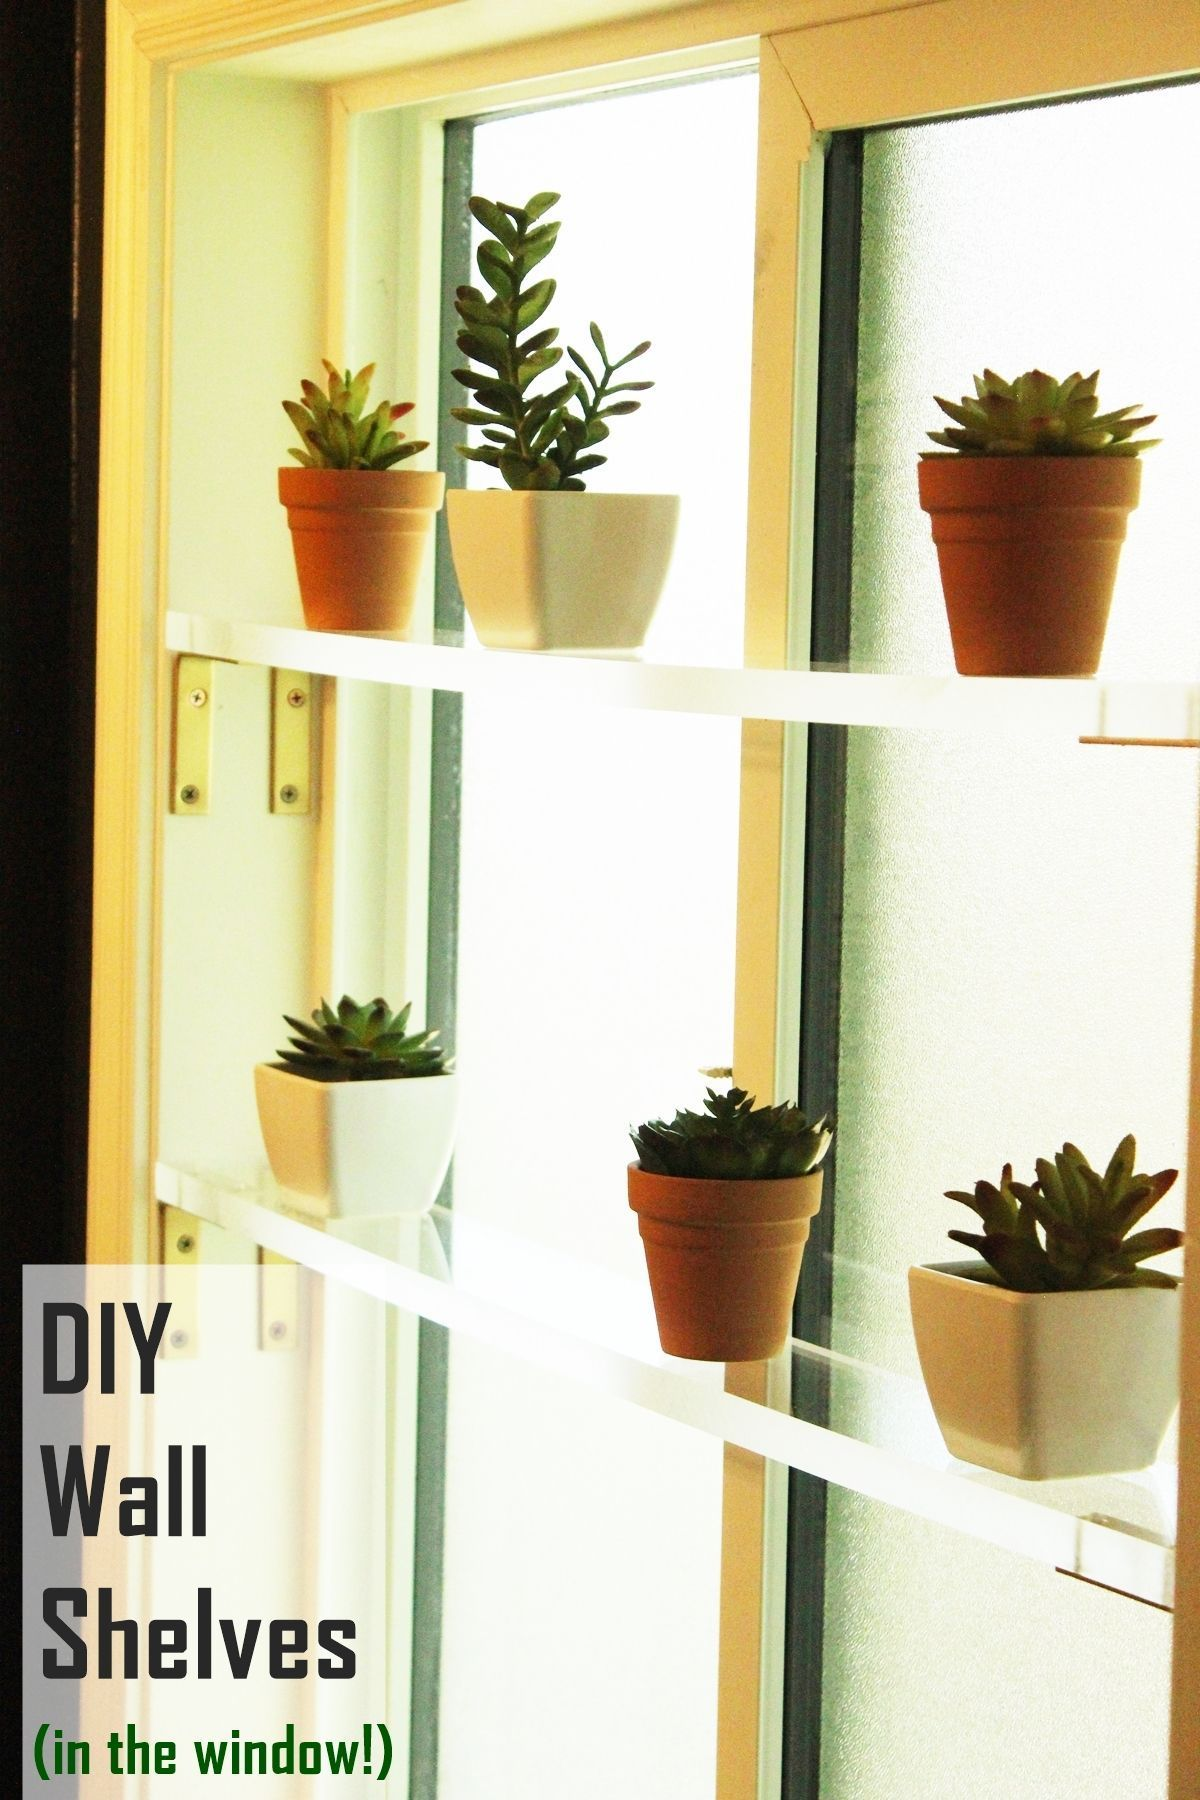 DIY Wall Shelves: Gorgeous Acrylic Shelves on Walls or in Windows ...